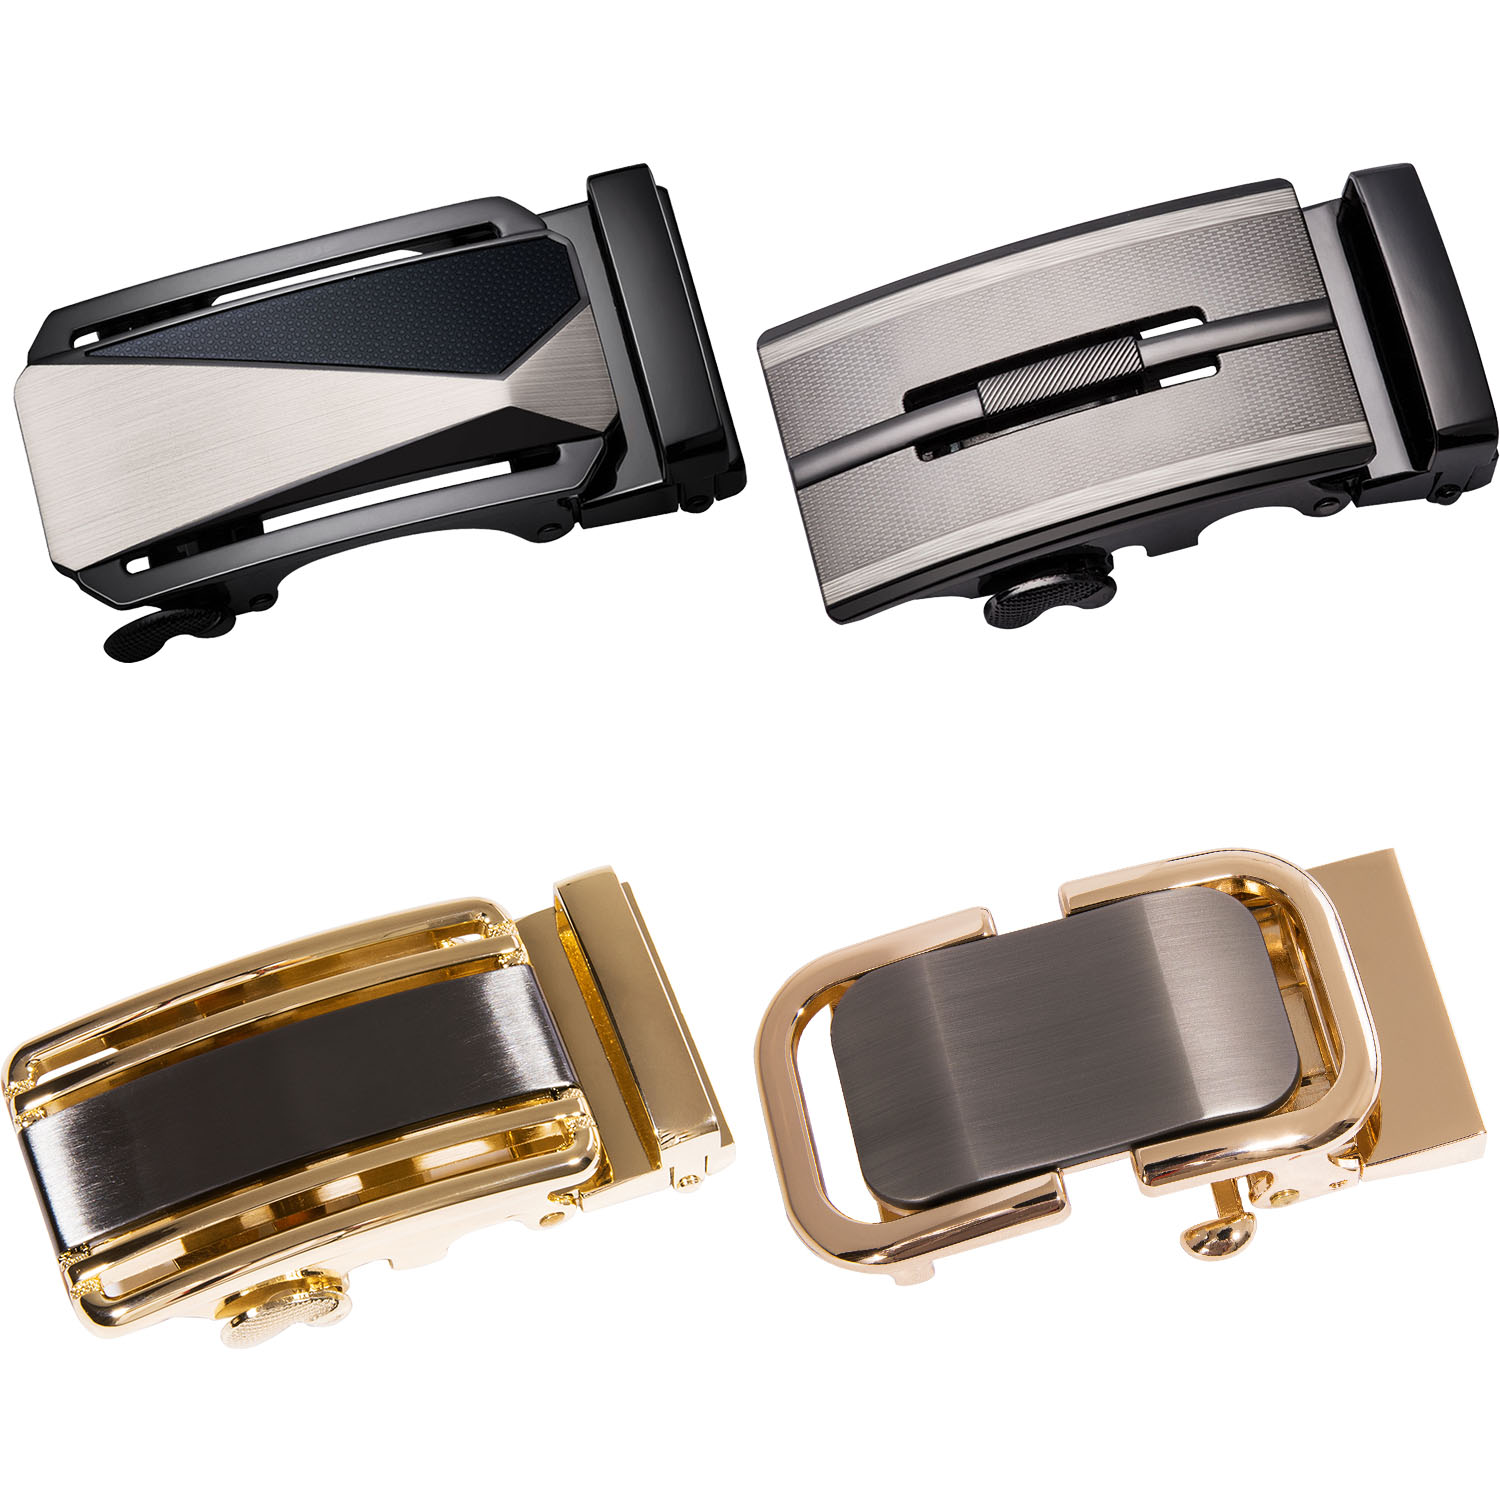 Fashion Men's Business Alloy Automatic Buckle For 3.5cm Ratchet Slide Buckle Replacement Belt Head Belt Accessories DiBanGu